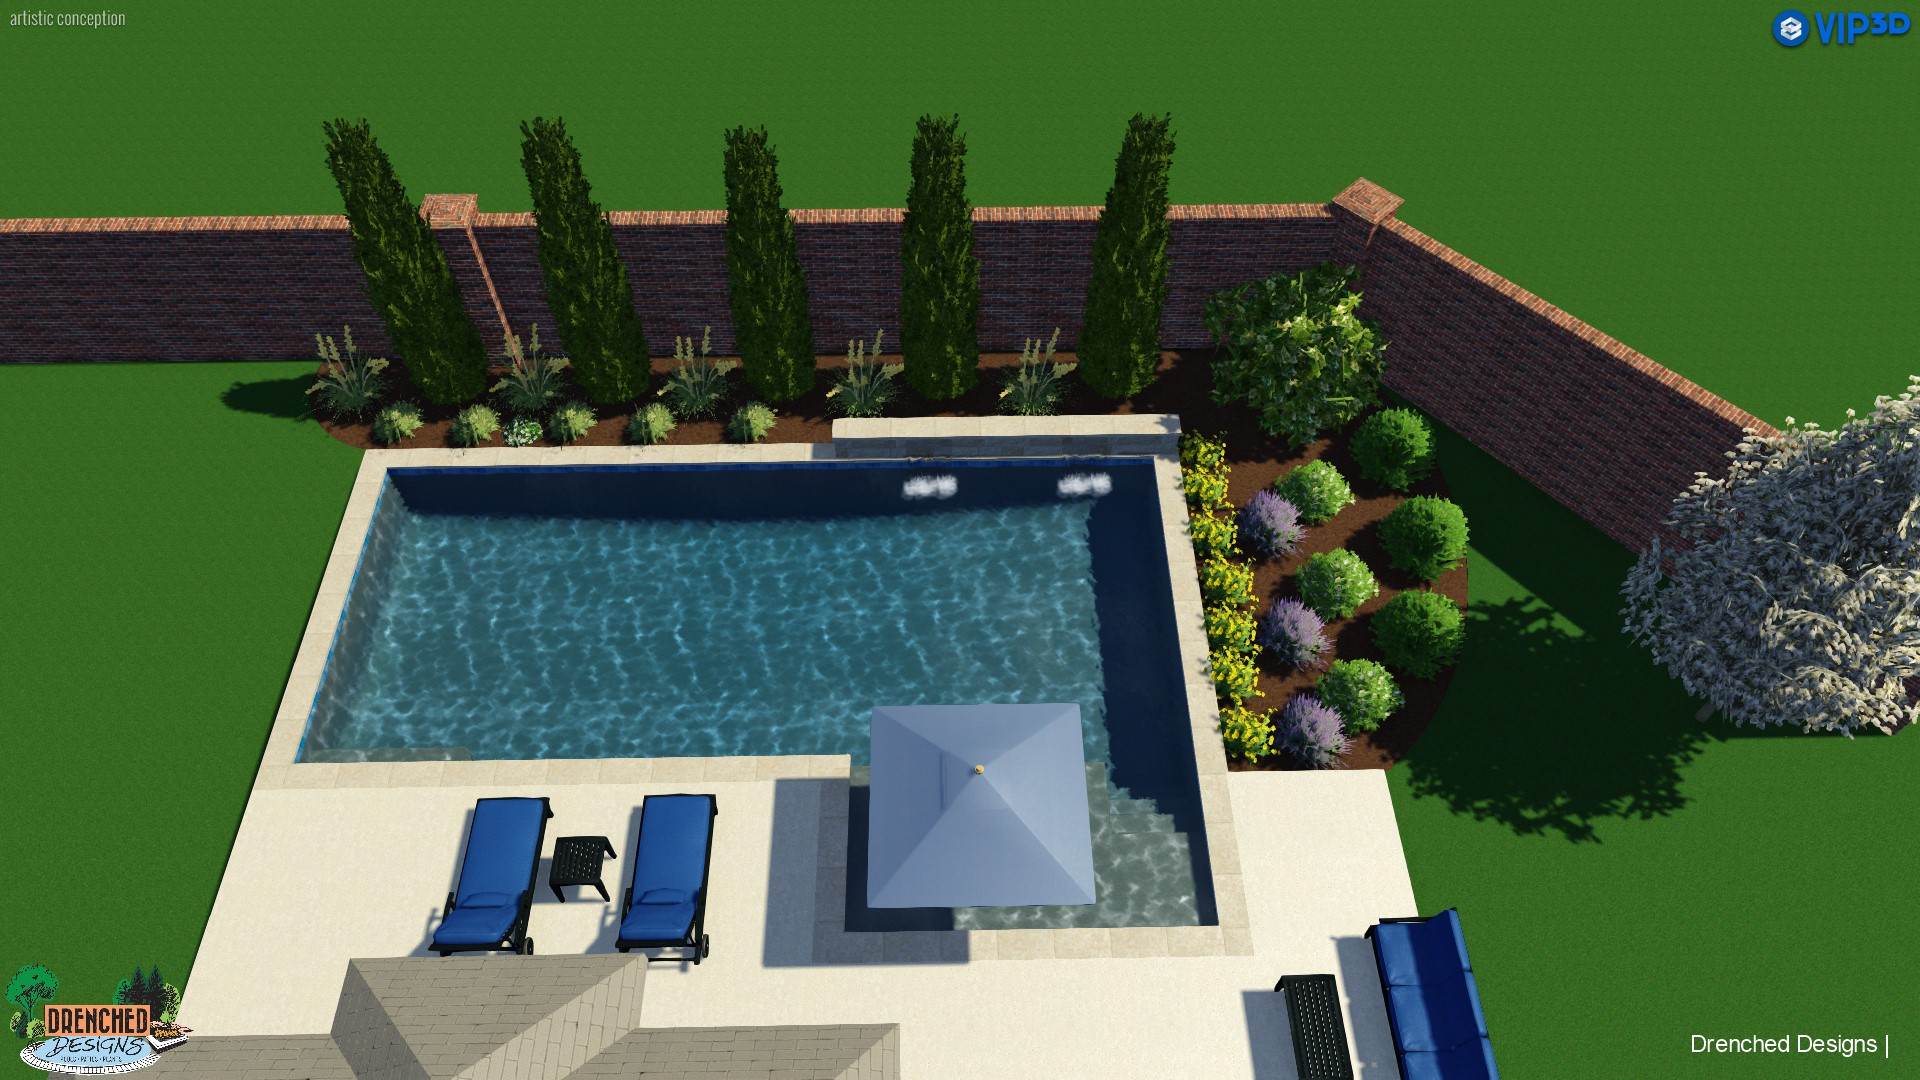 sagel_poolside1.jpg